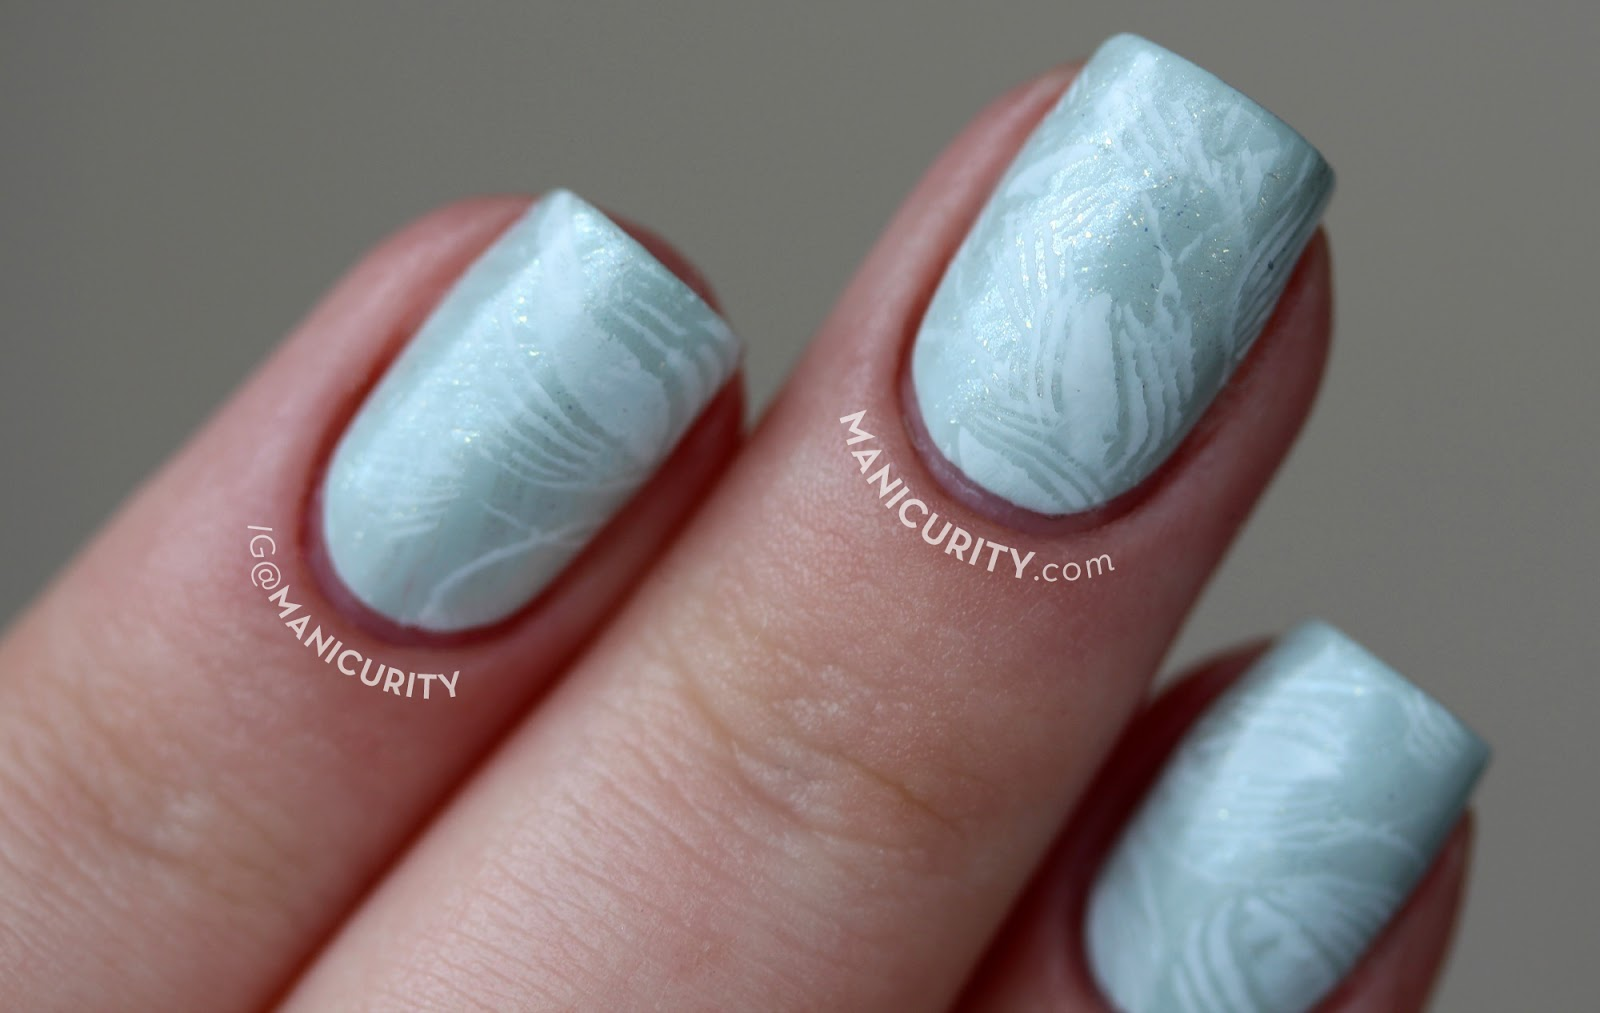 The Digit-al Dozen does Vintage: Soft Subtle Mod Stamped Nails - subtle vintage nail art for short nails | Manicurity.com